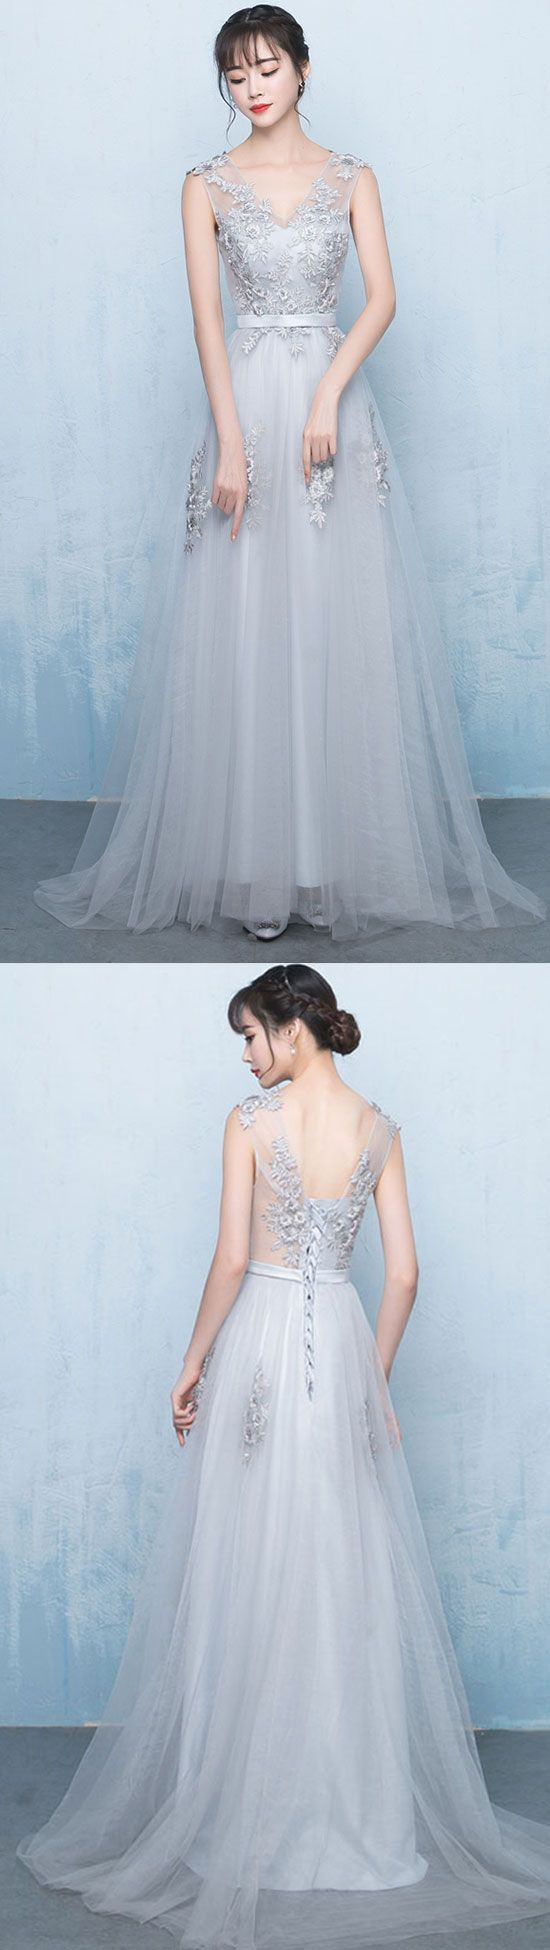 Gray v neck tulle lace applique long prom dress, gray bridesmaid ...